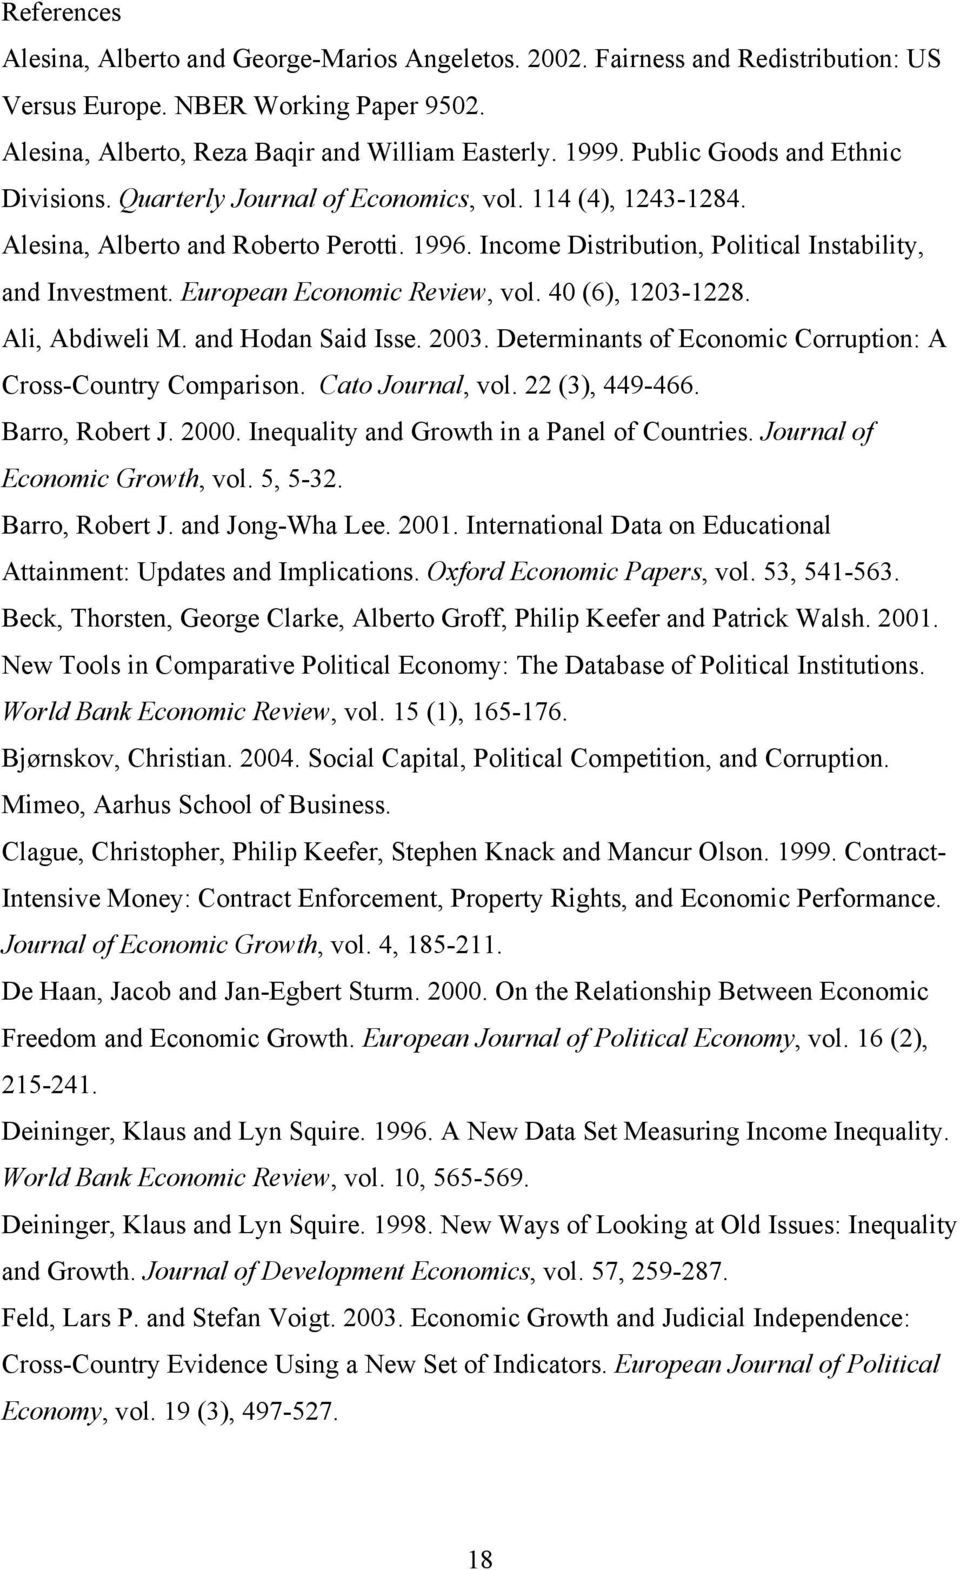 European Economic Review, vol. 40 (6), 1203-1228. Ali, Abdiweli M. and Hodan Said Isse. 2003. Determinants of Economic Corruption: A Cross-Country Comparison. Cato Journal, vol. 22 (3), 449-466.